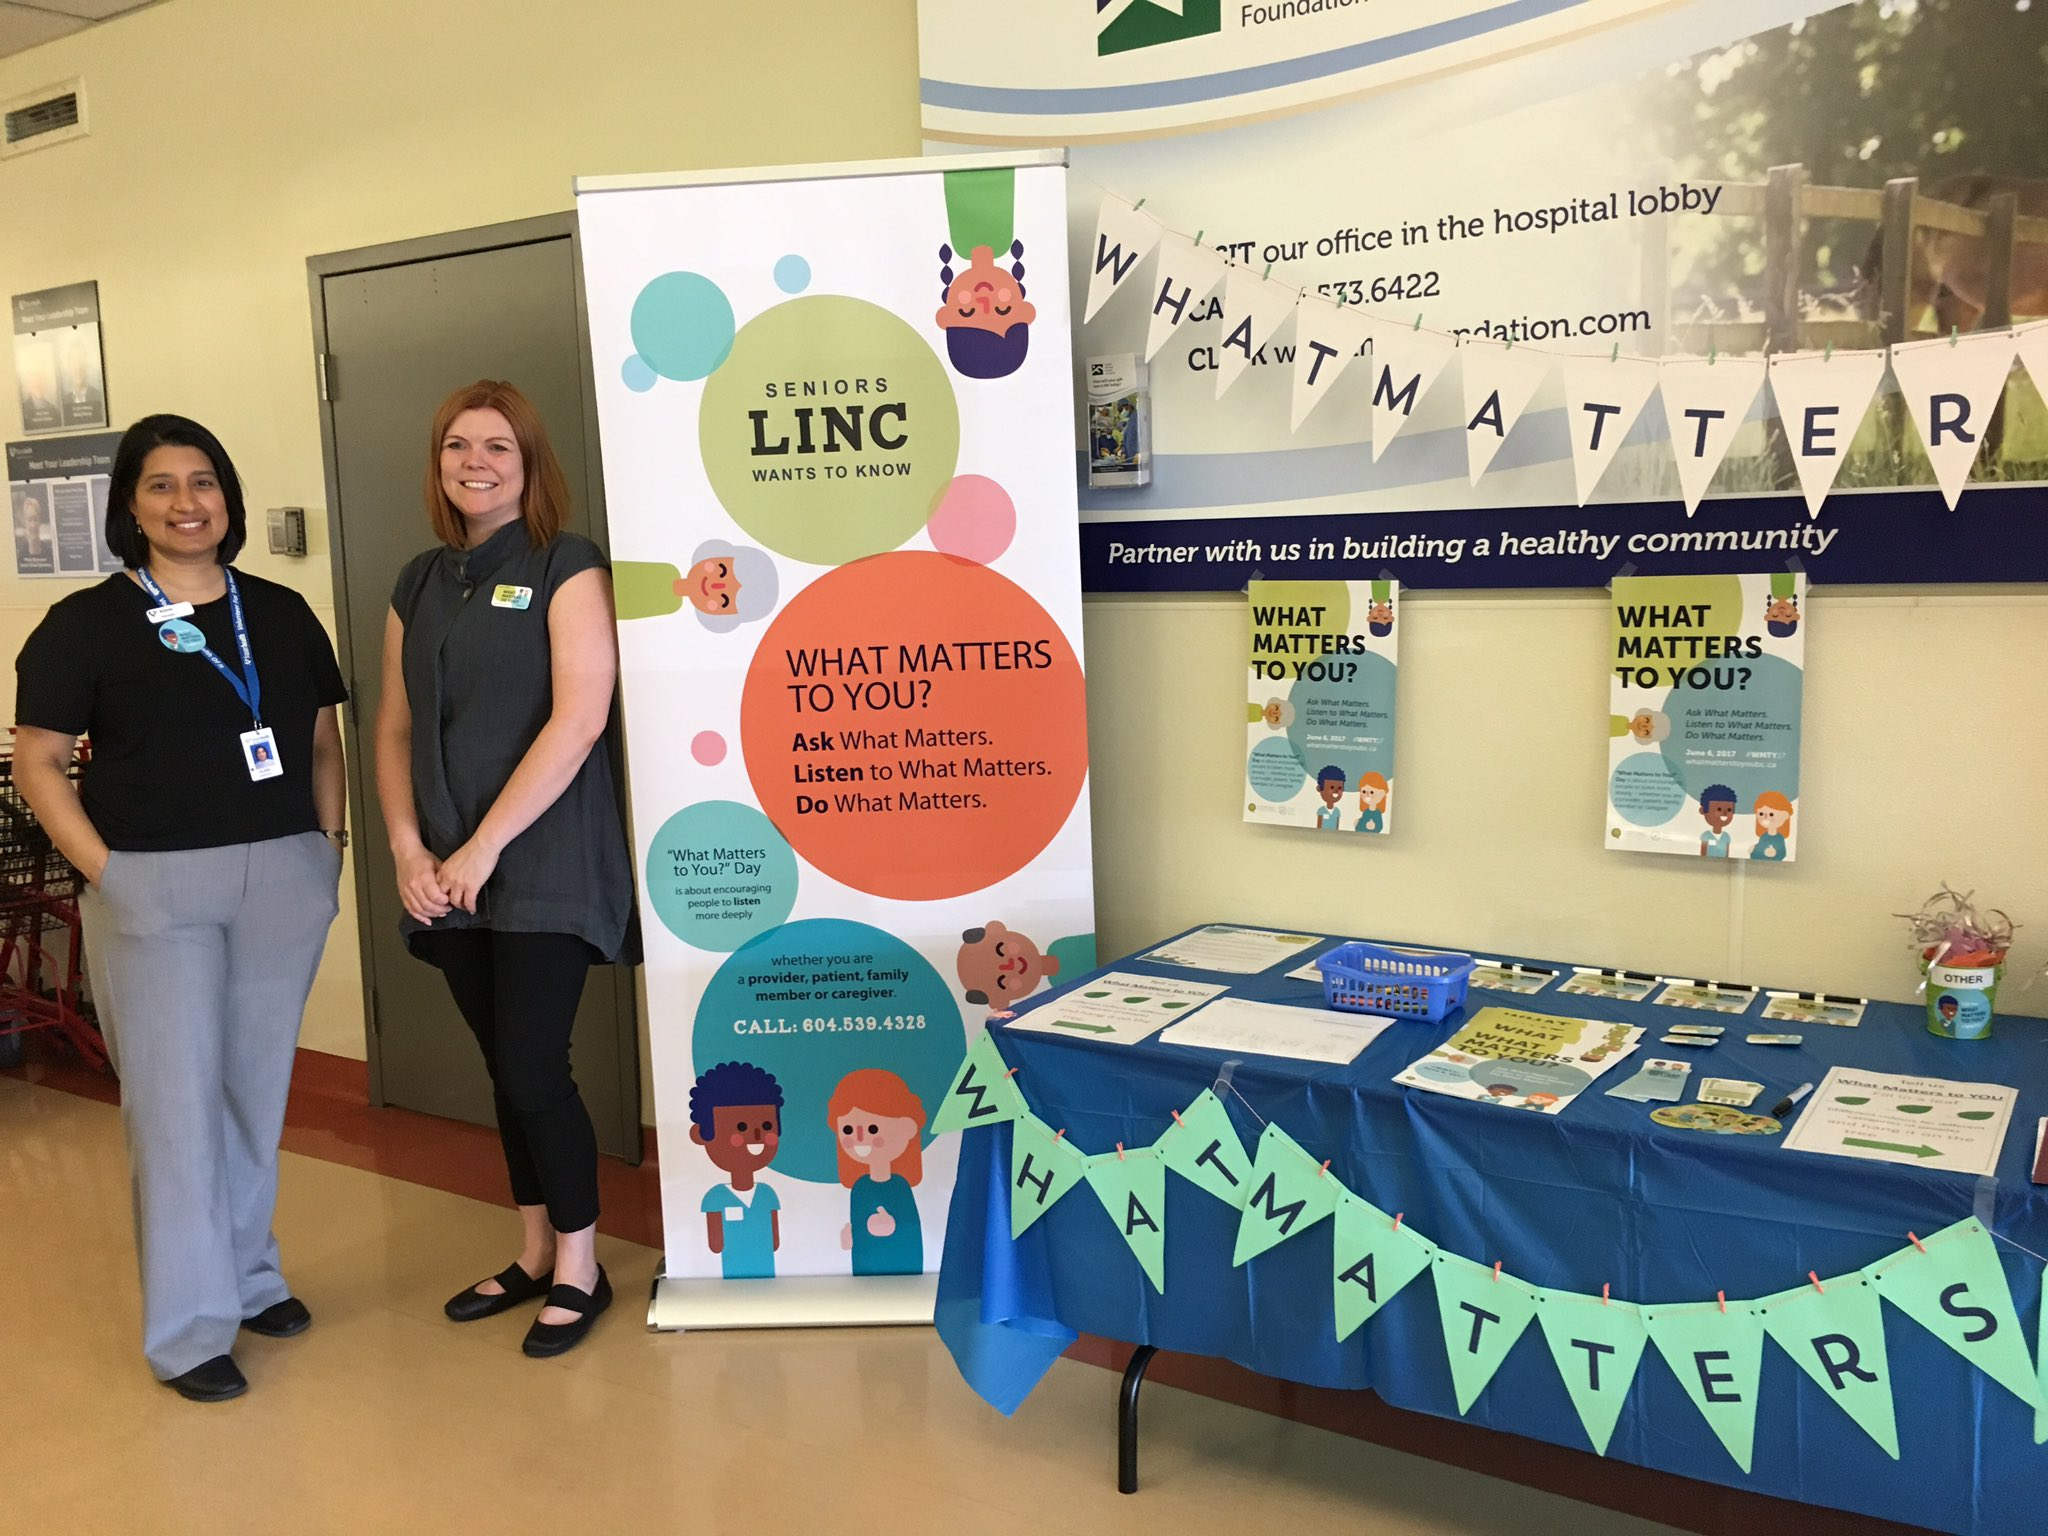 Kudos #langleymemorialhospital #WMTY17 organizers Alita &Alana! @Fraserhealth @PatientVoicesBC @BCPSQC Fun 1st stop. Great energy! https://t.co/dKCncE6Gck